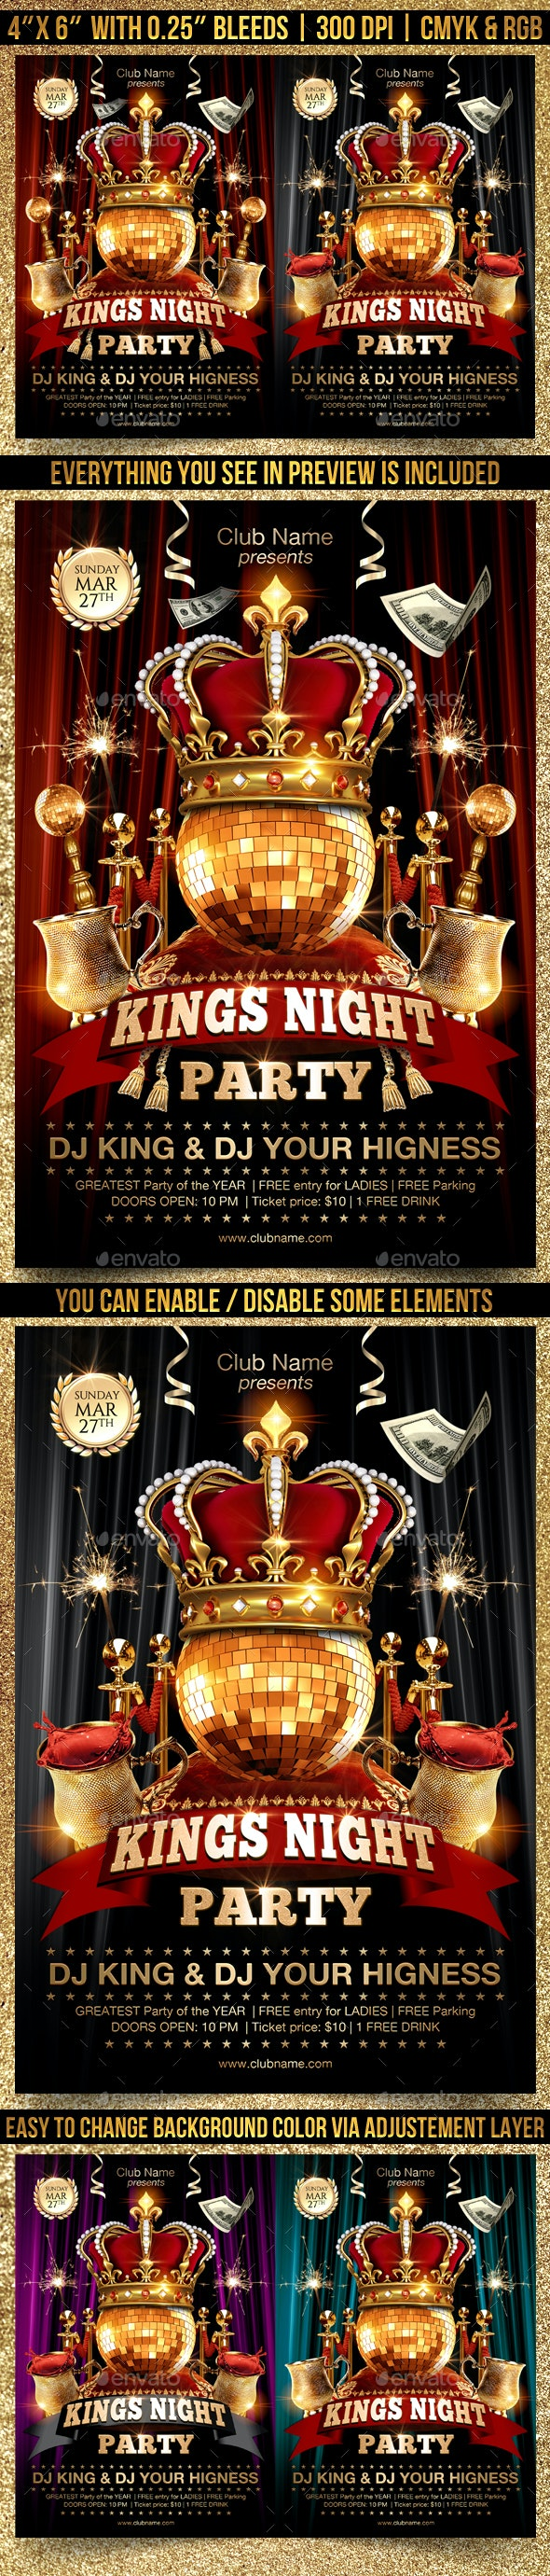 Kings Night Flyer Template - Clubs & Parties Events